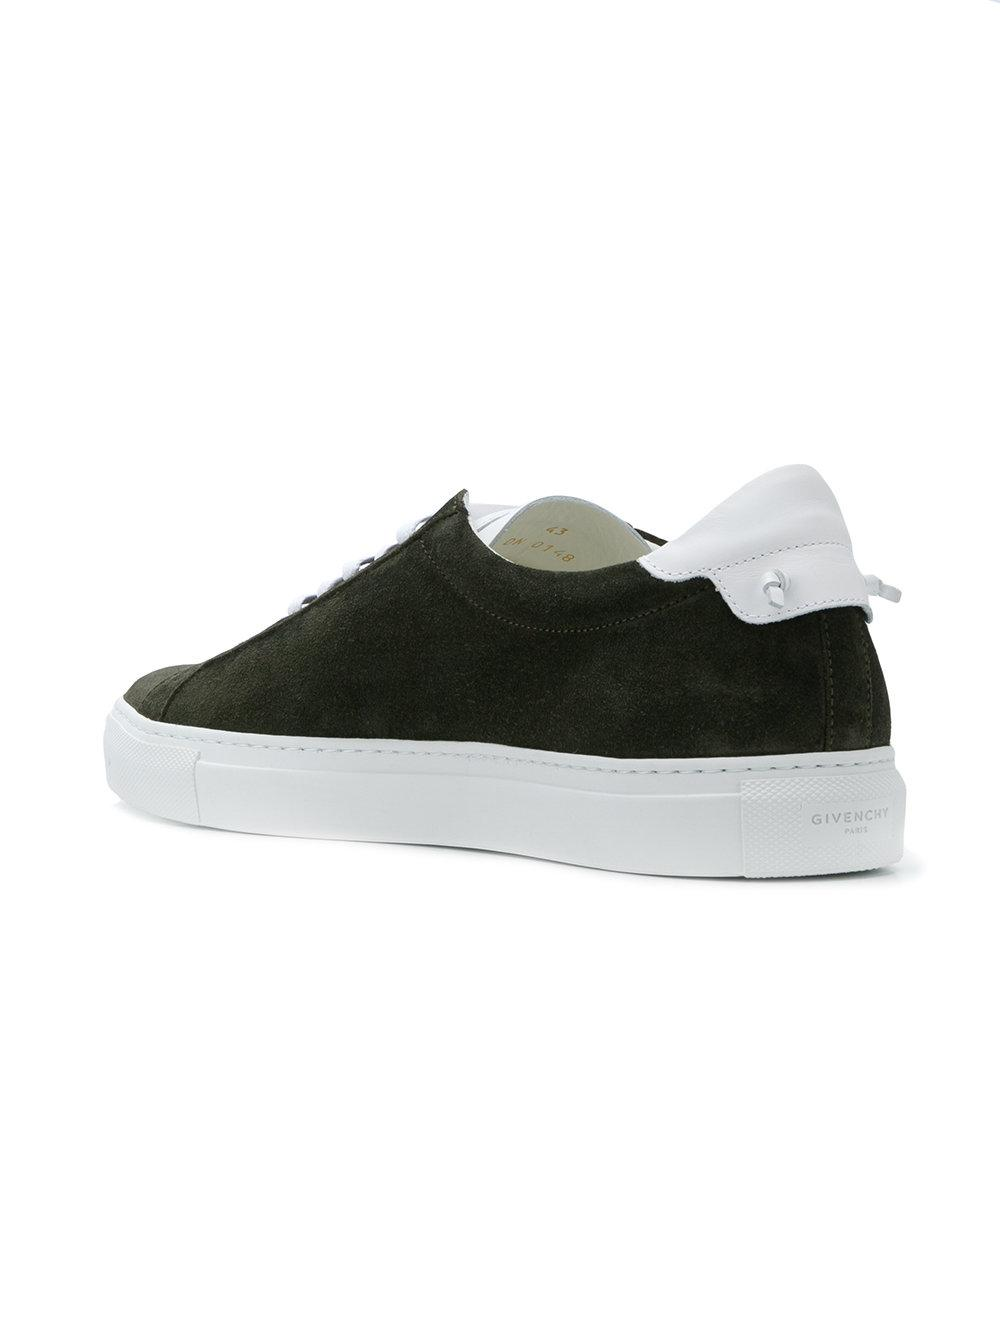 sports shoes 30f54 4bbb6 givenchy-Green-Contrast-Low-top-Sneakers.jpeg